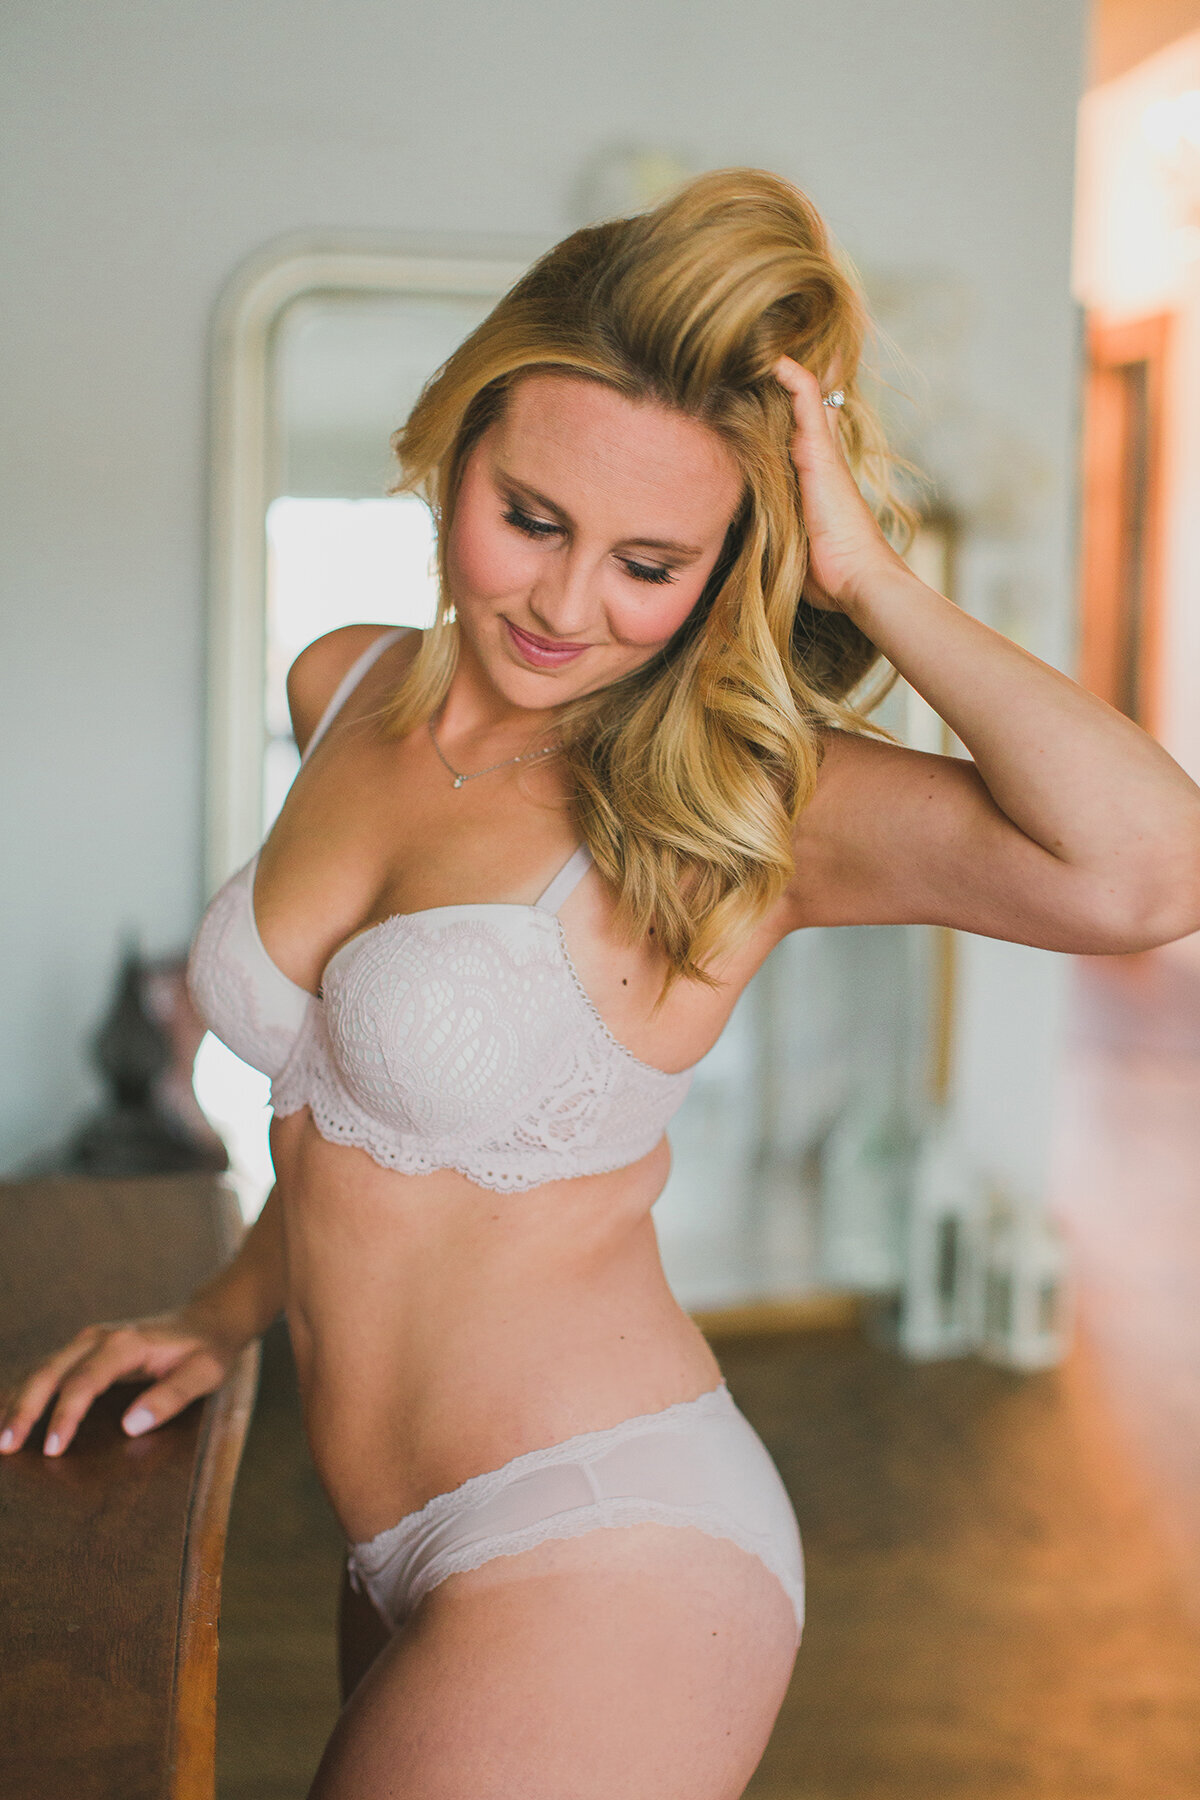 A woman celebrating her postpartum body with a boudoir photo shoot in Chicago.